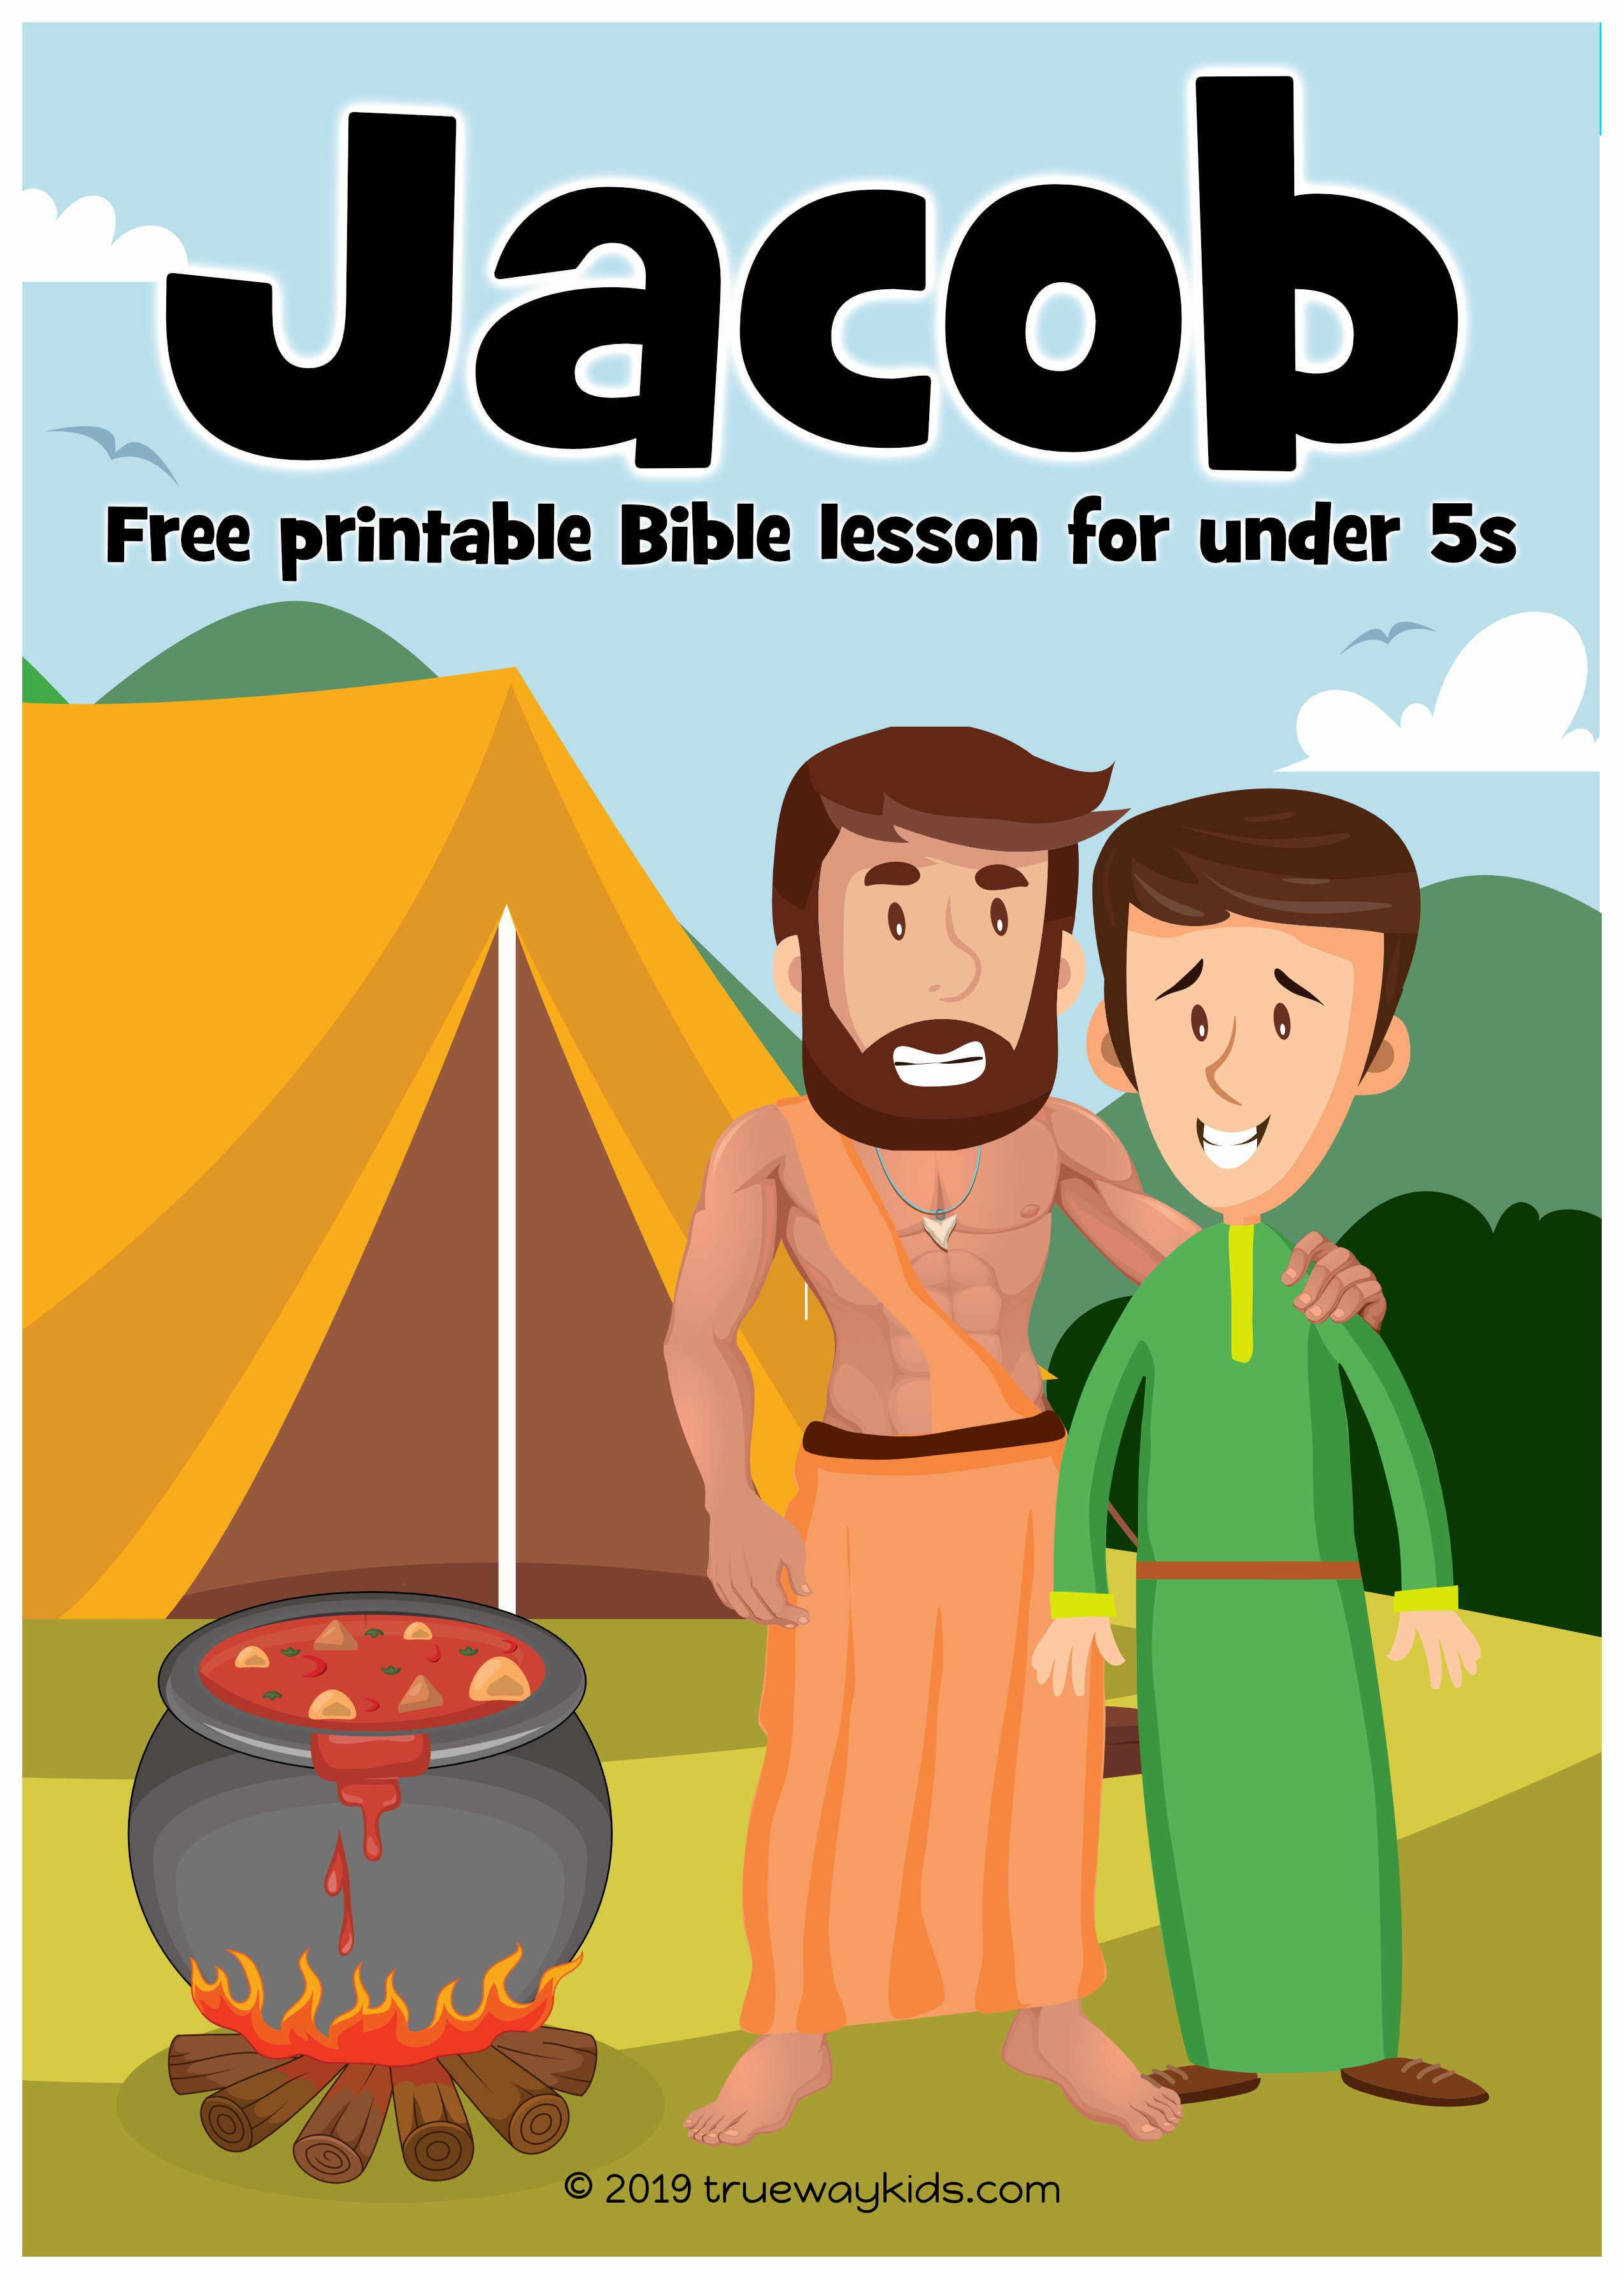 Jacob Preschool Bible Lesson Learn About How God Can